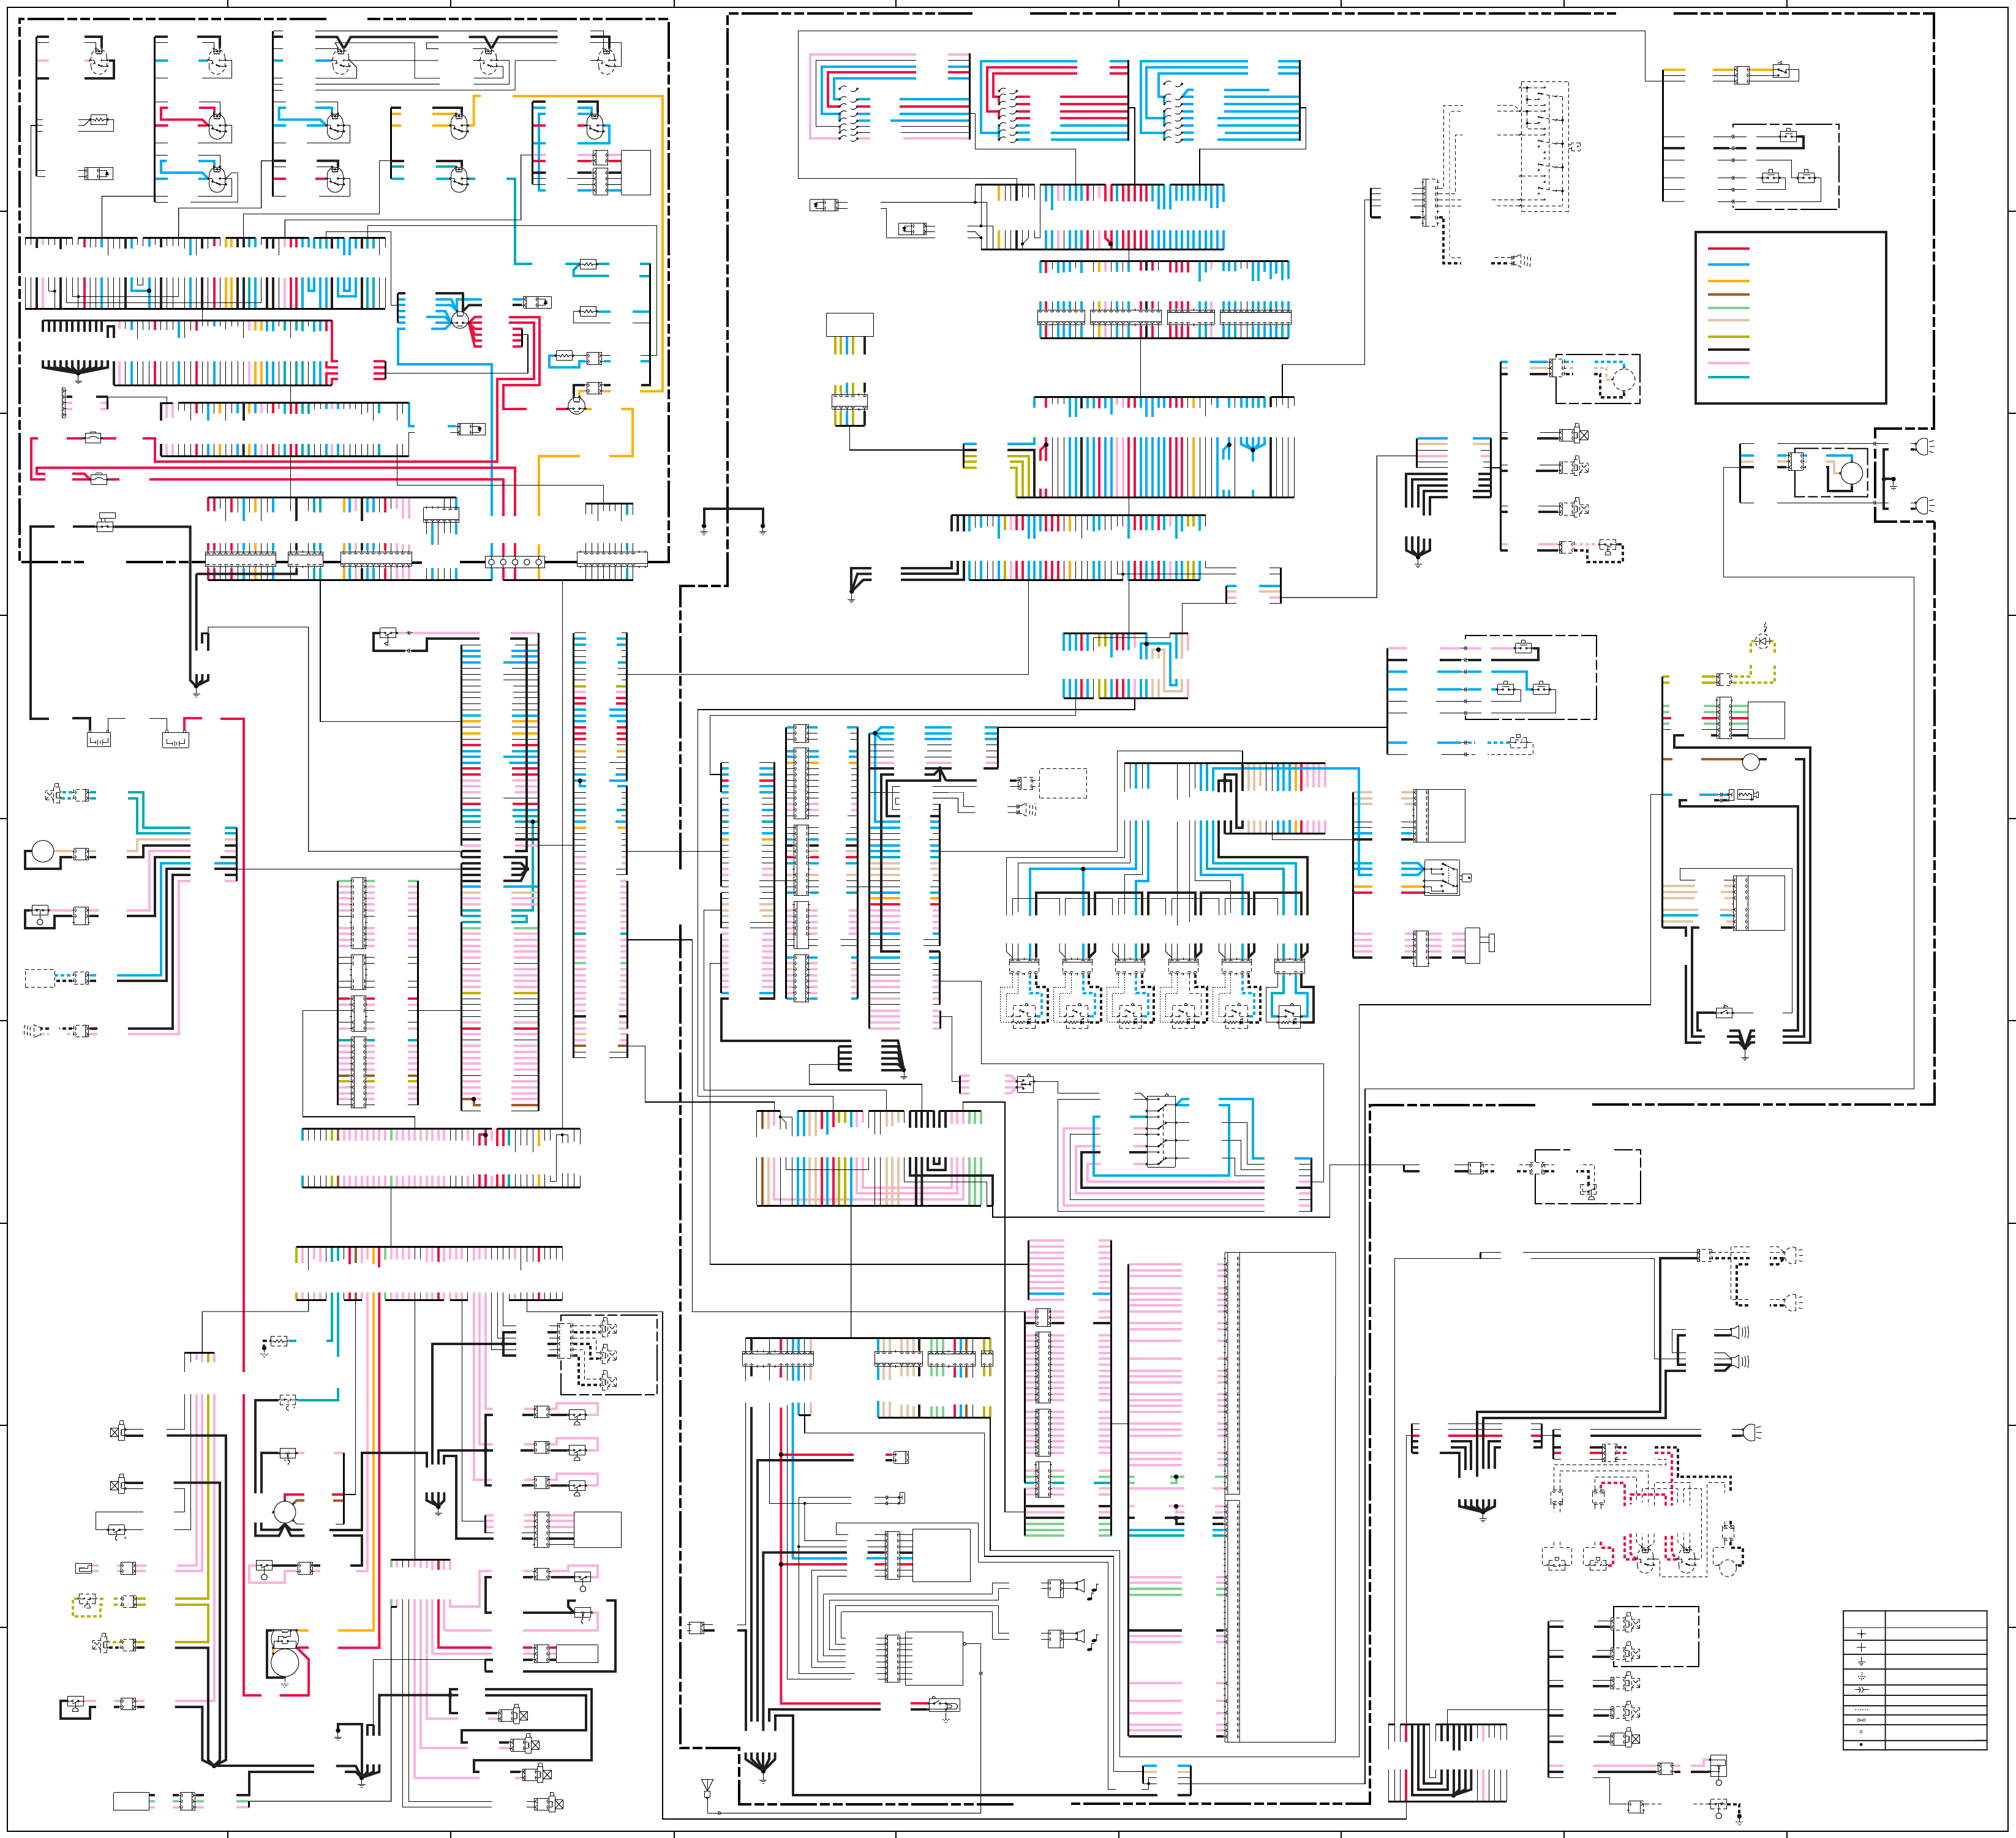 312b,312b l excavator electrical schematic used in service  cat excavator wiring diagrams #4